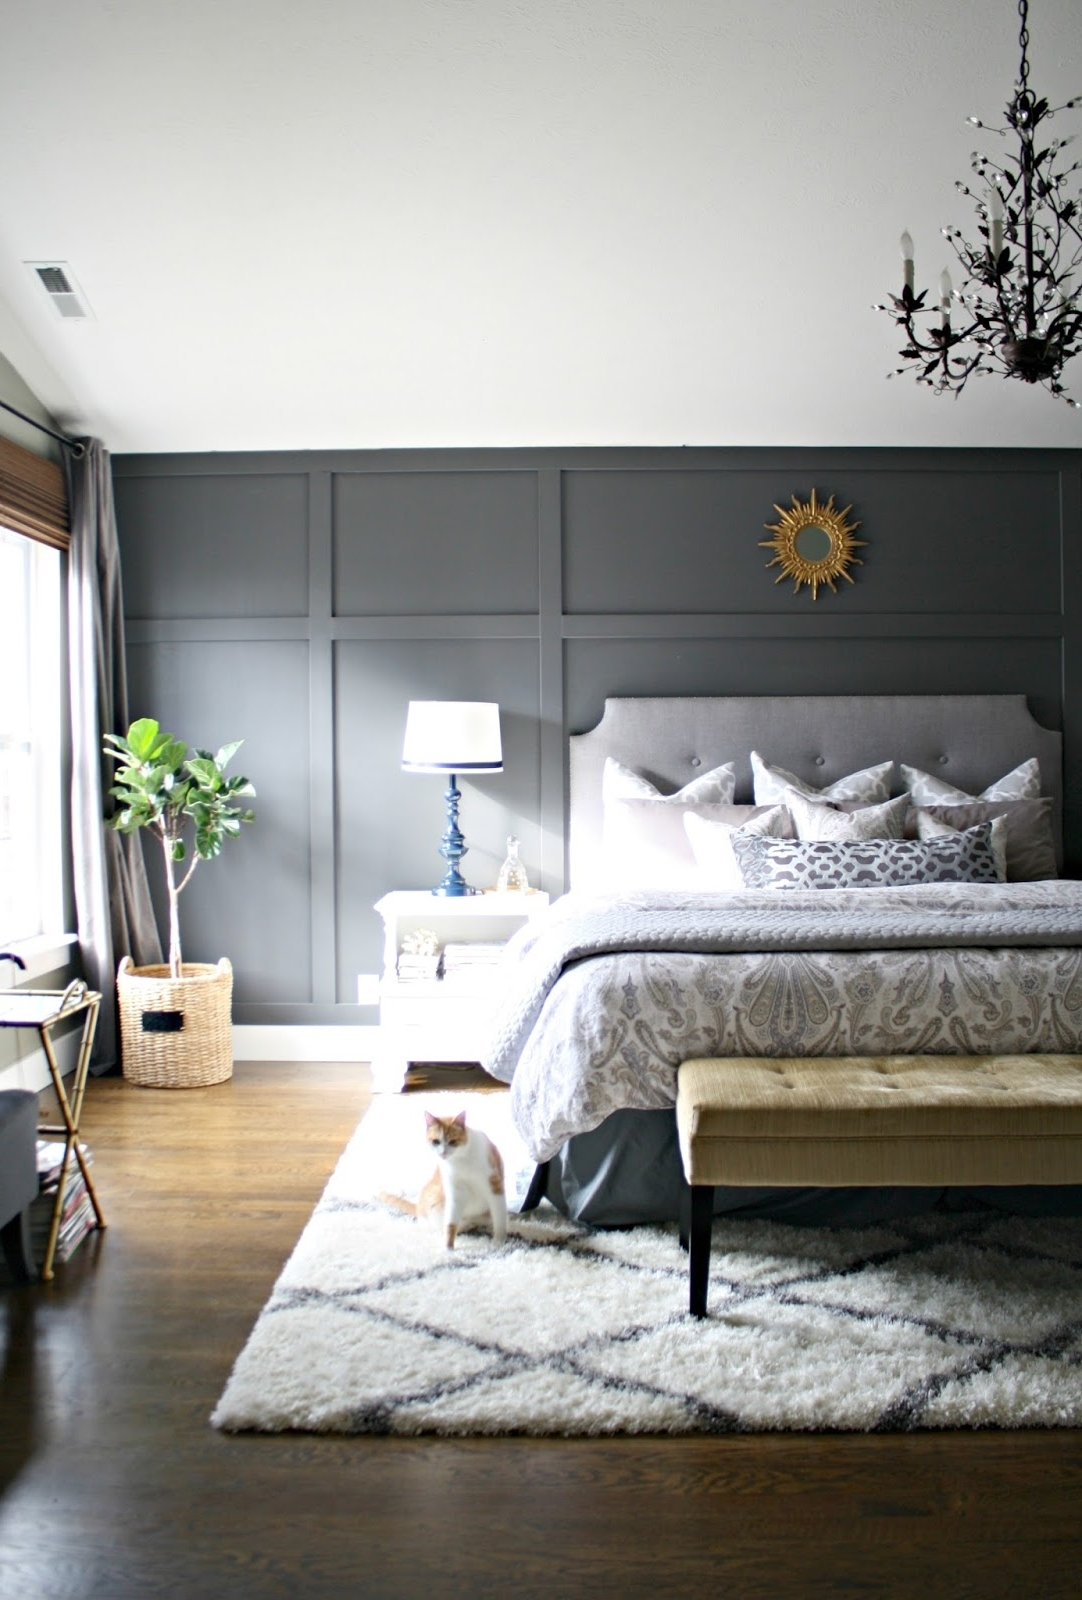 15 Ideas of Wallpaper Bedroom Wall Accents